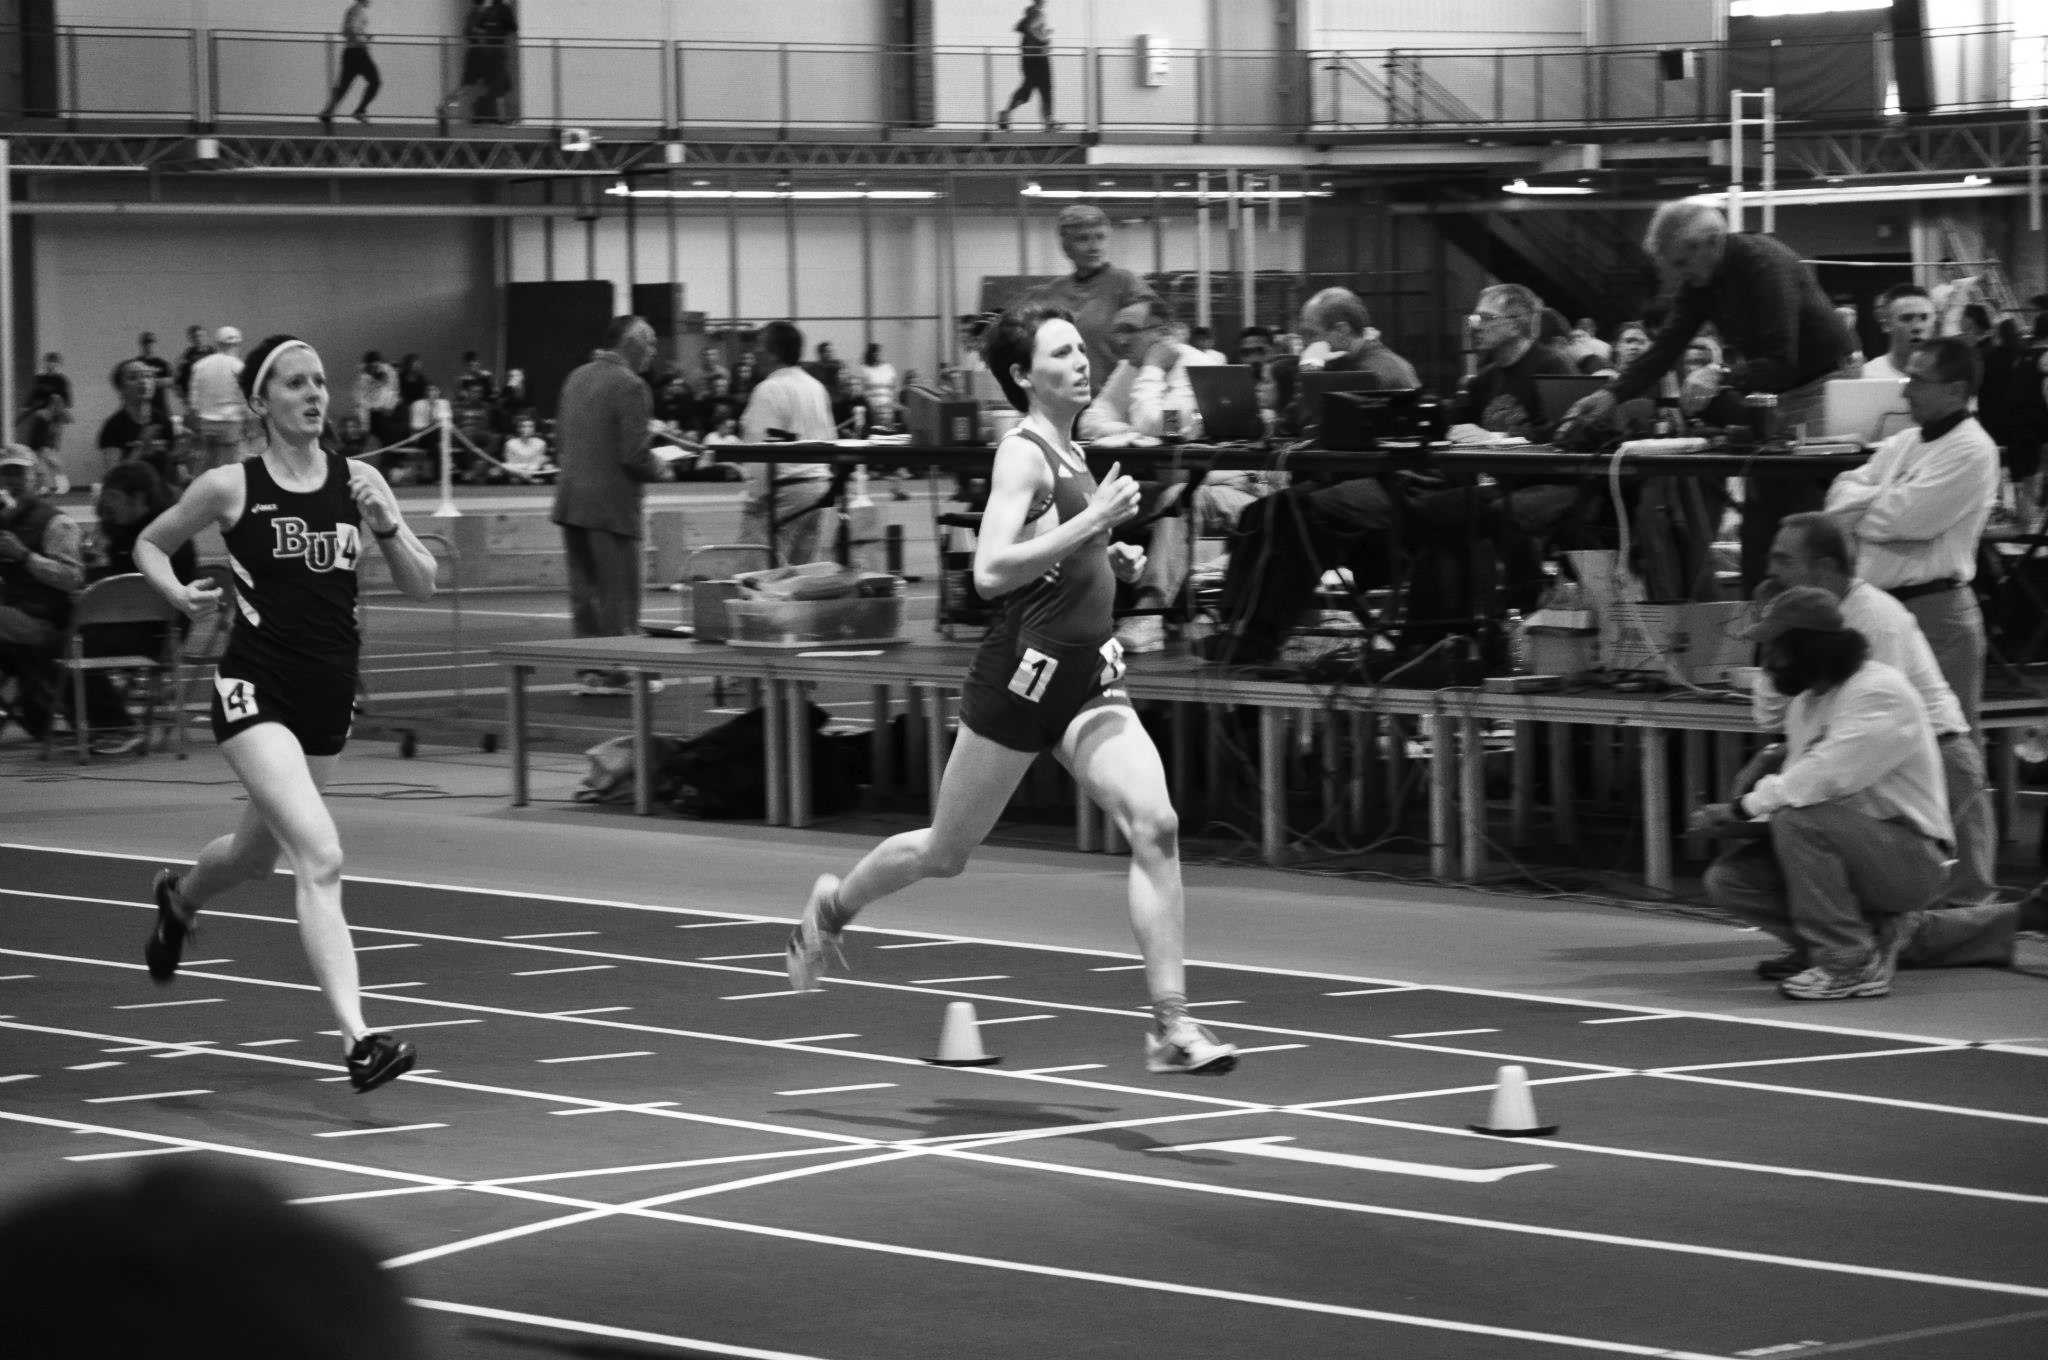 Marta+LeFevre-Levy+%E2%80%9914+finishes+her+600m+race%2C+placing+8th+overall.+Photo+courtesy+of+Joe+Gibson.